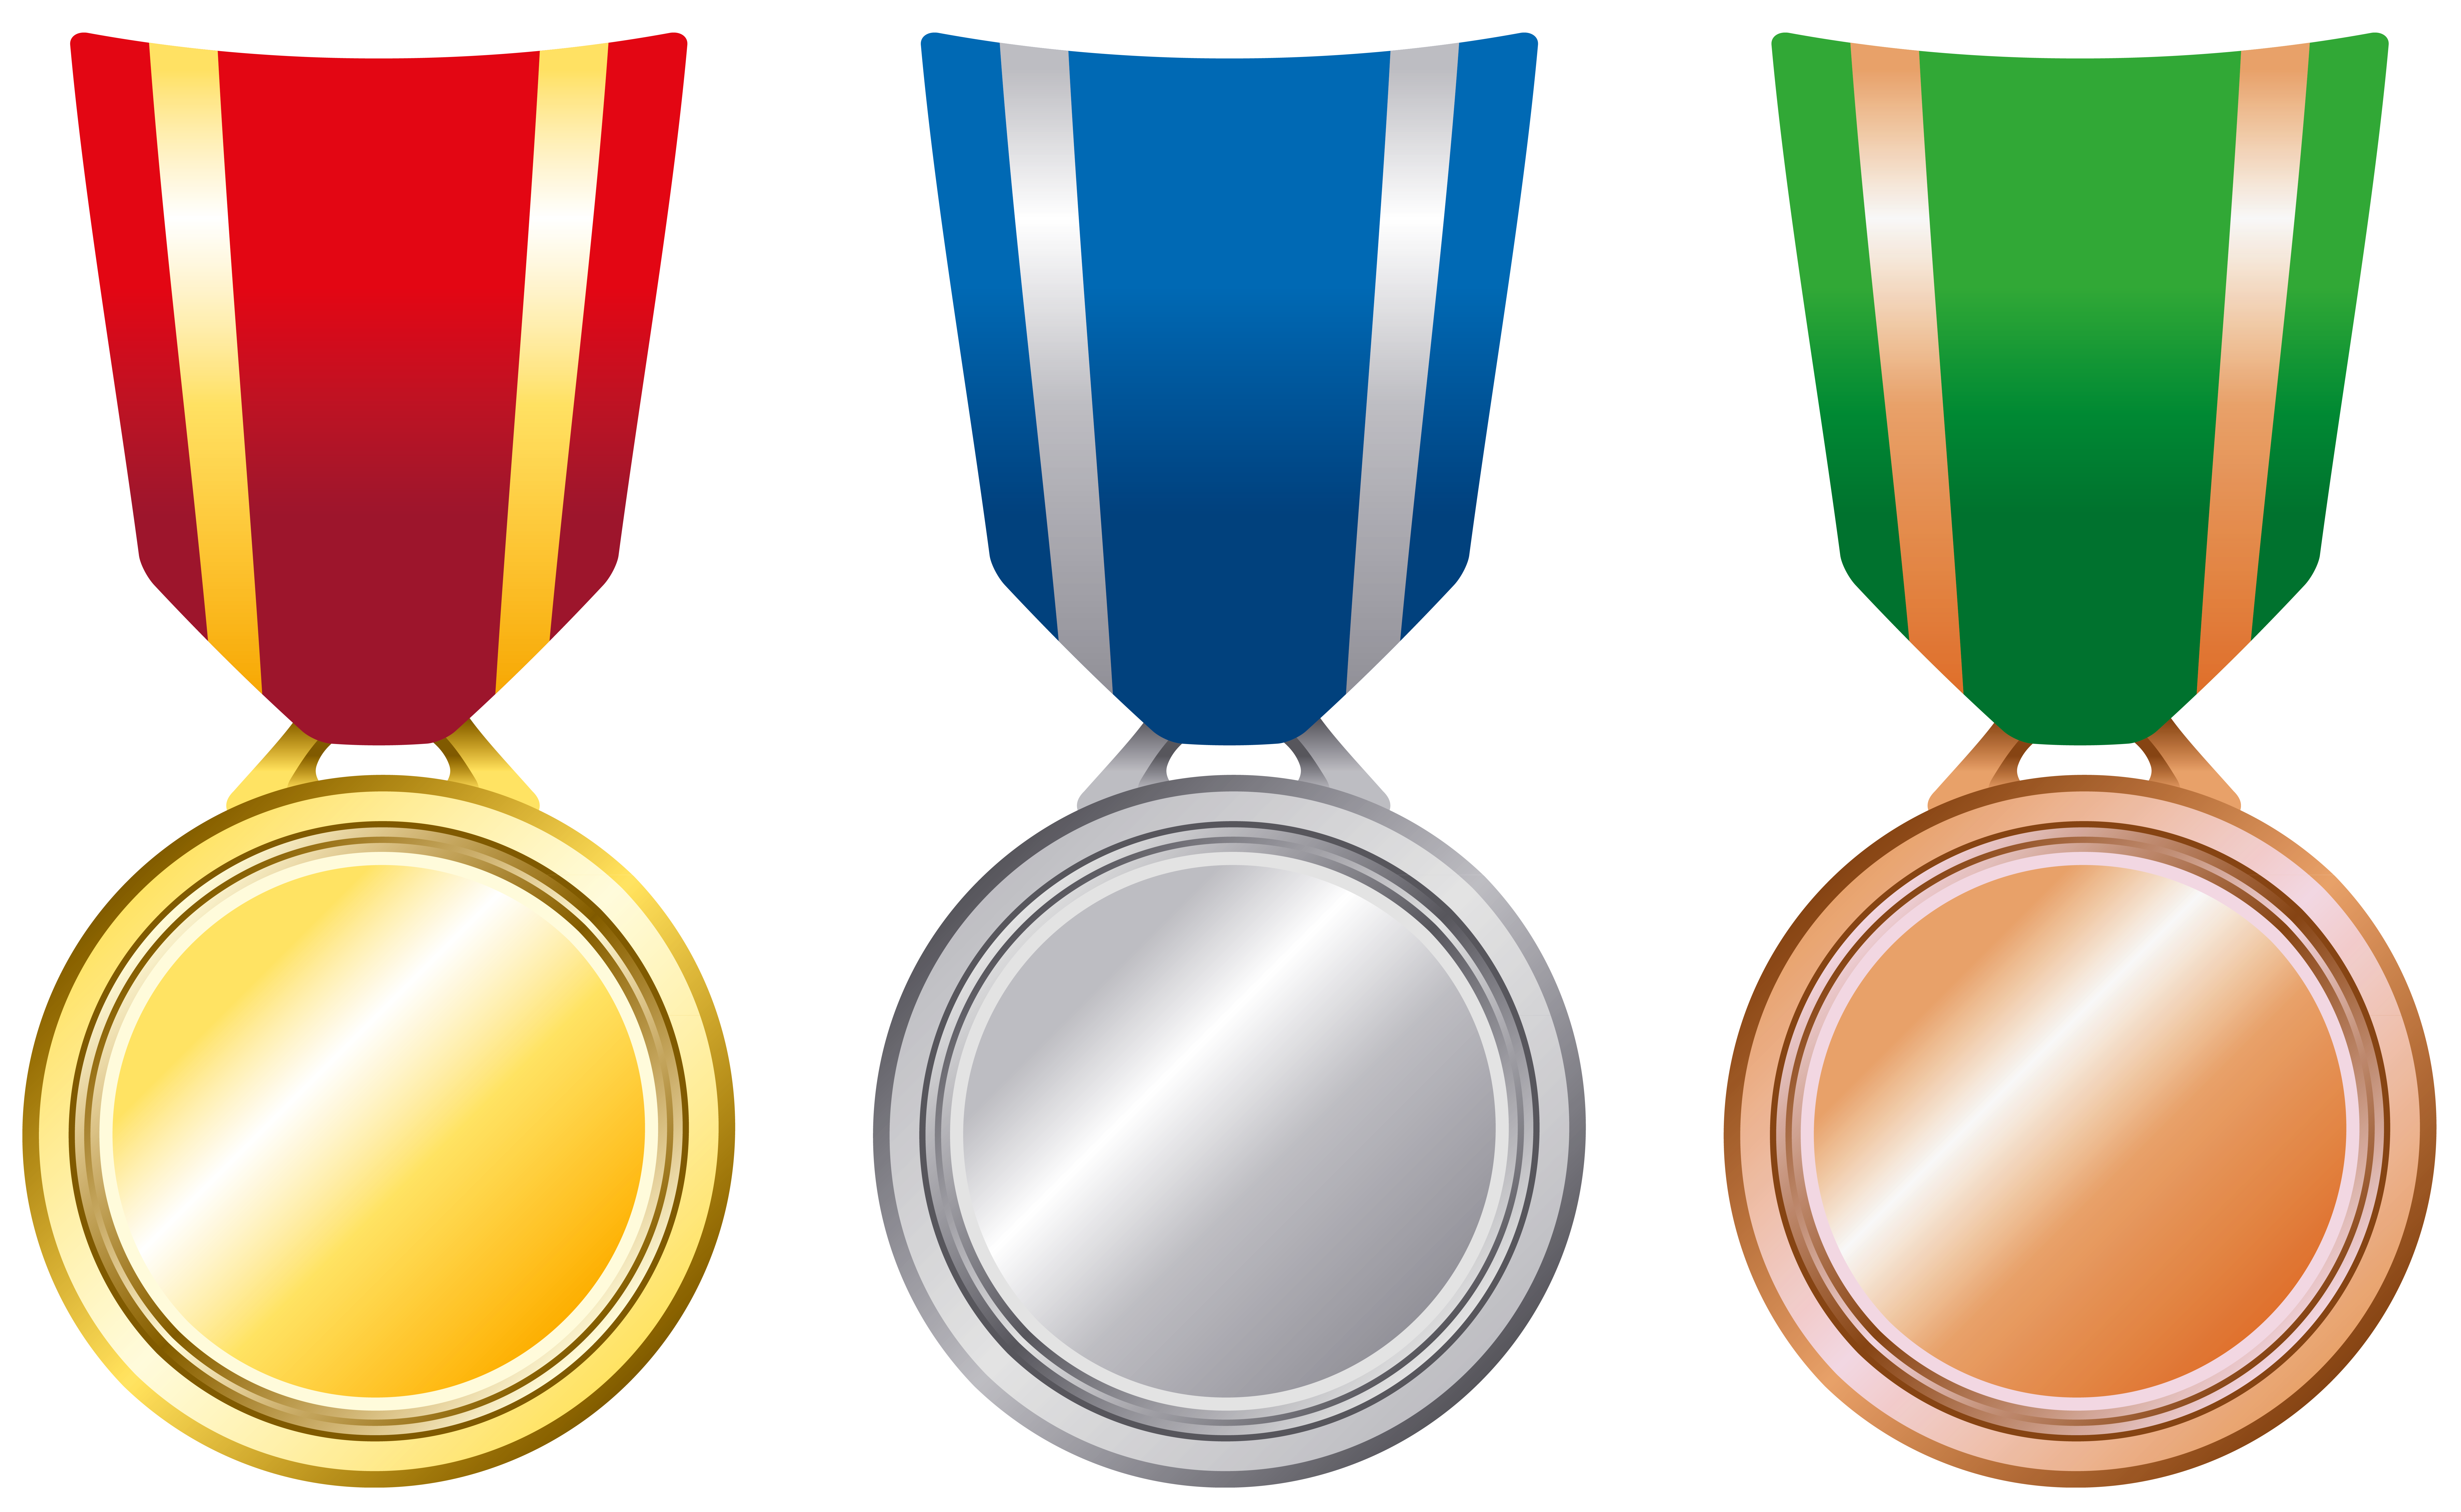 Silver clipart many medal Medals Bronze Transparent Gold View